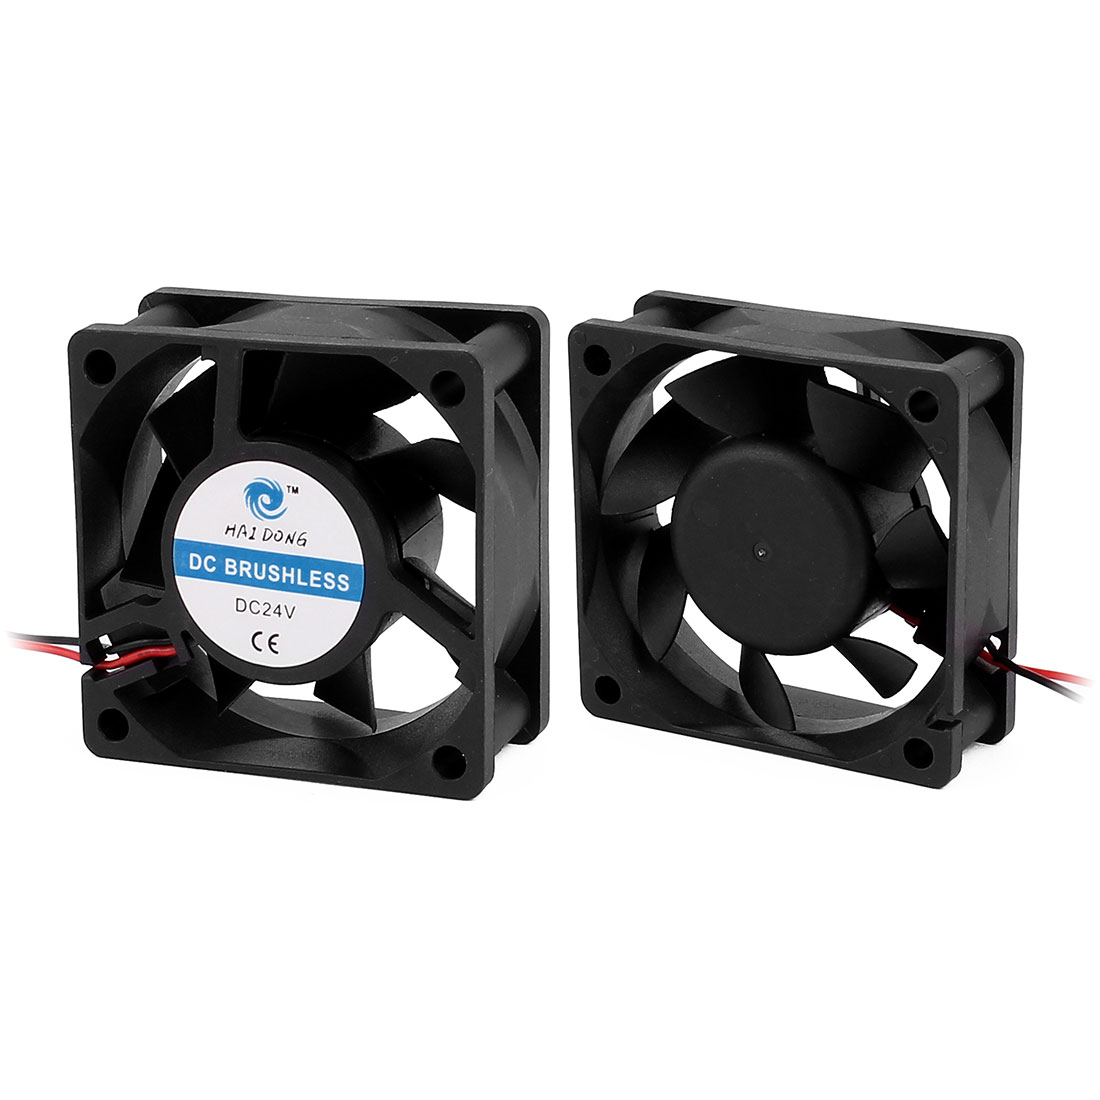 2Pcs DC 24V 60 x 60 x 25mm 7 Vanes 2 Leading Wires Case Cooling Fan for PC Case